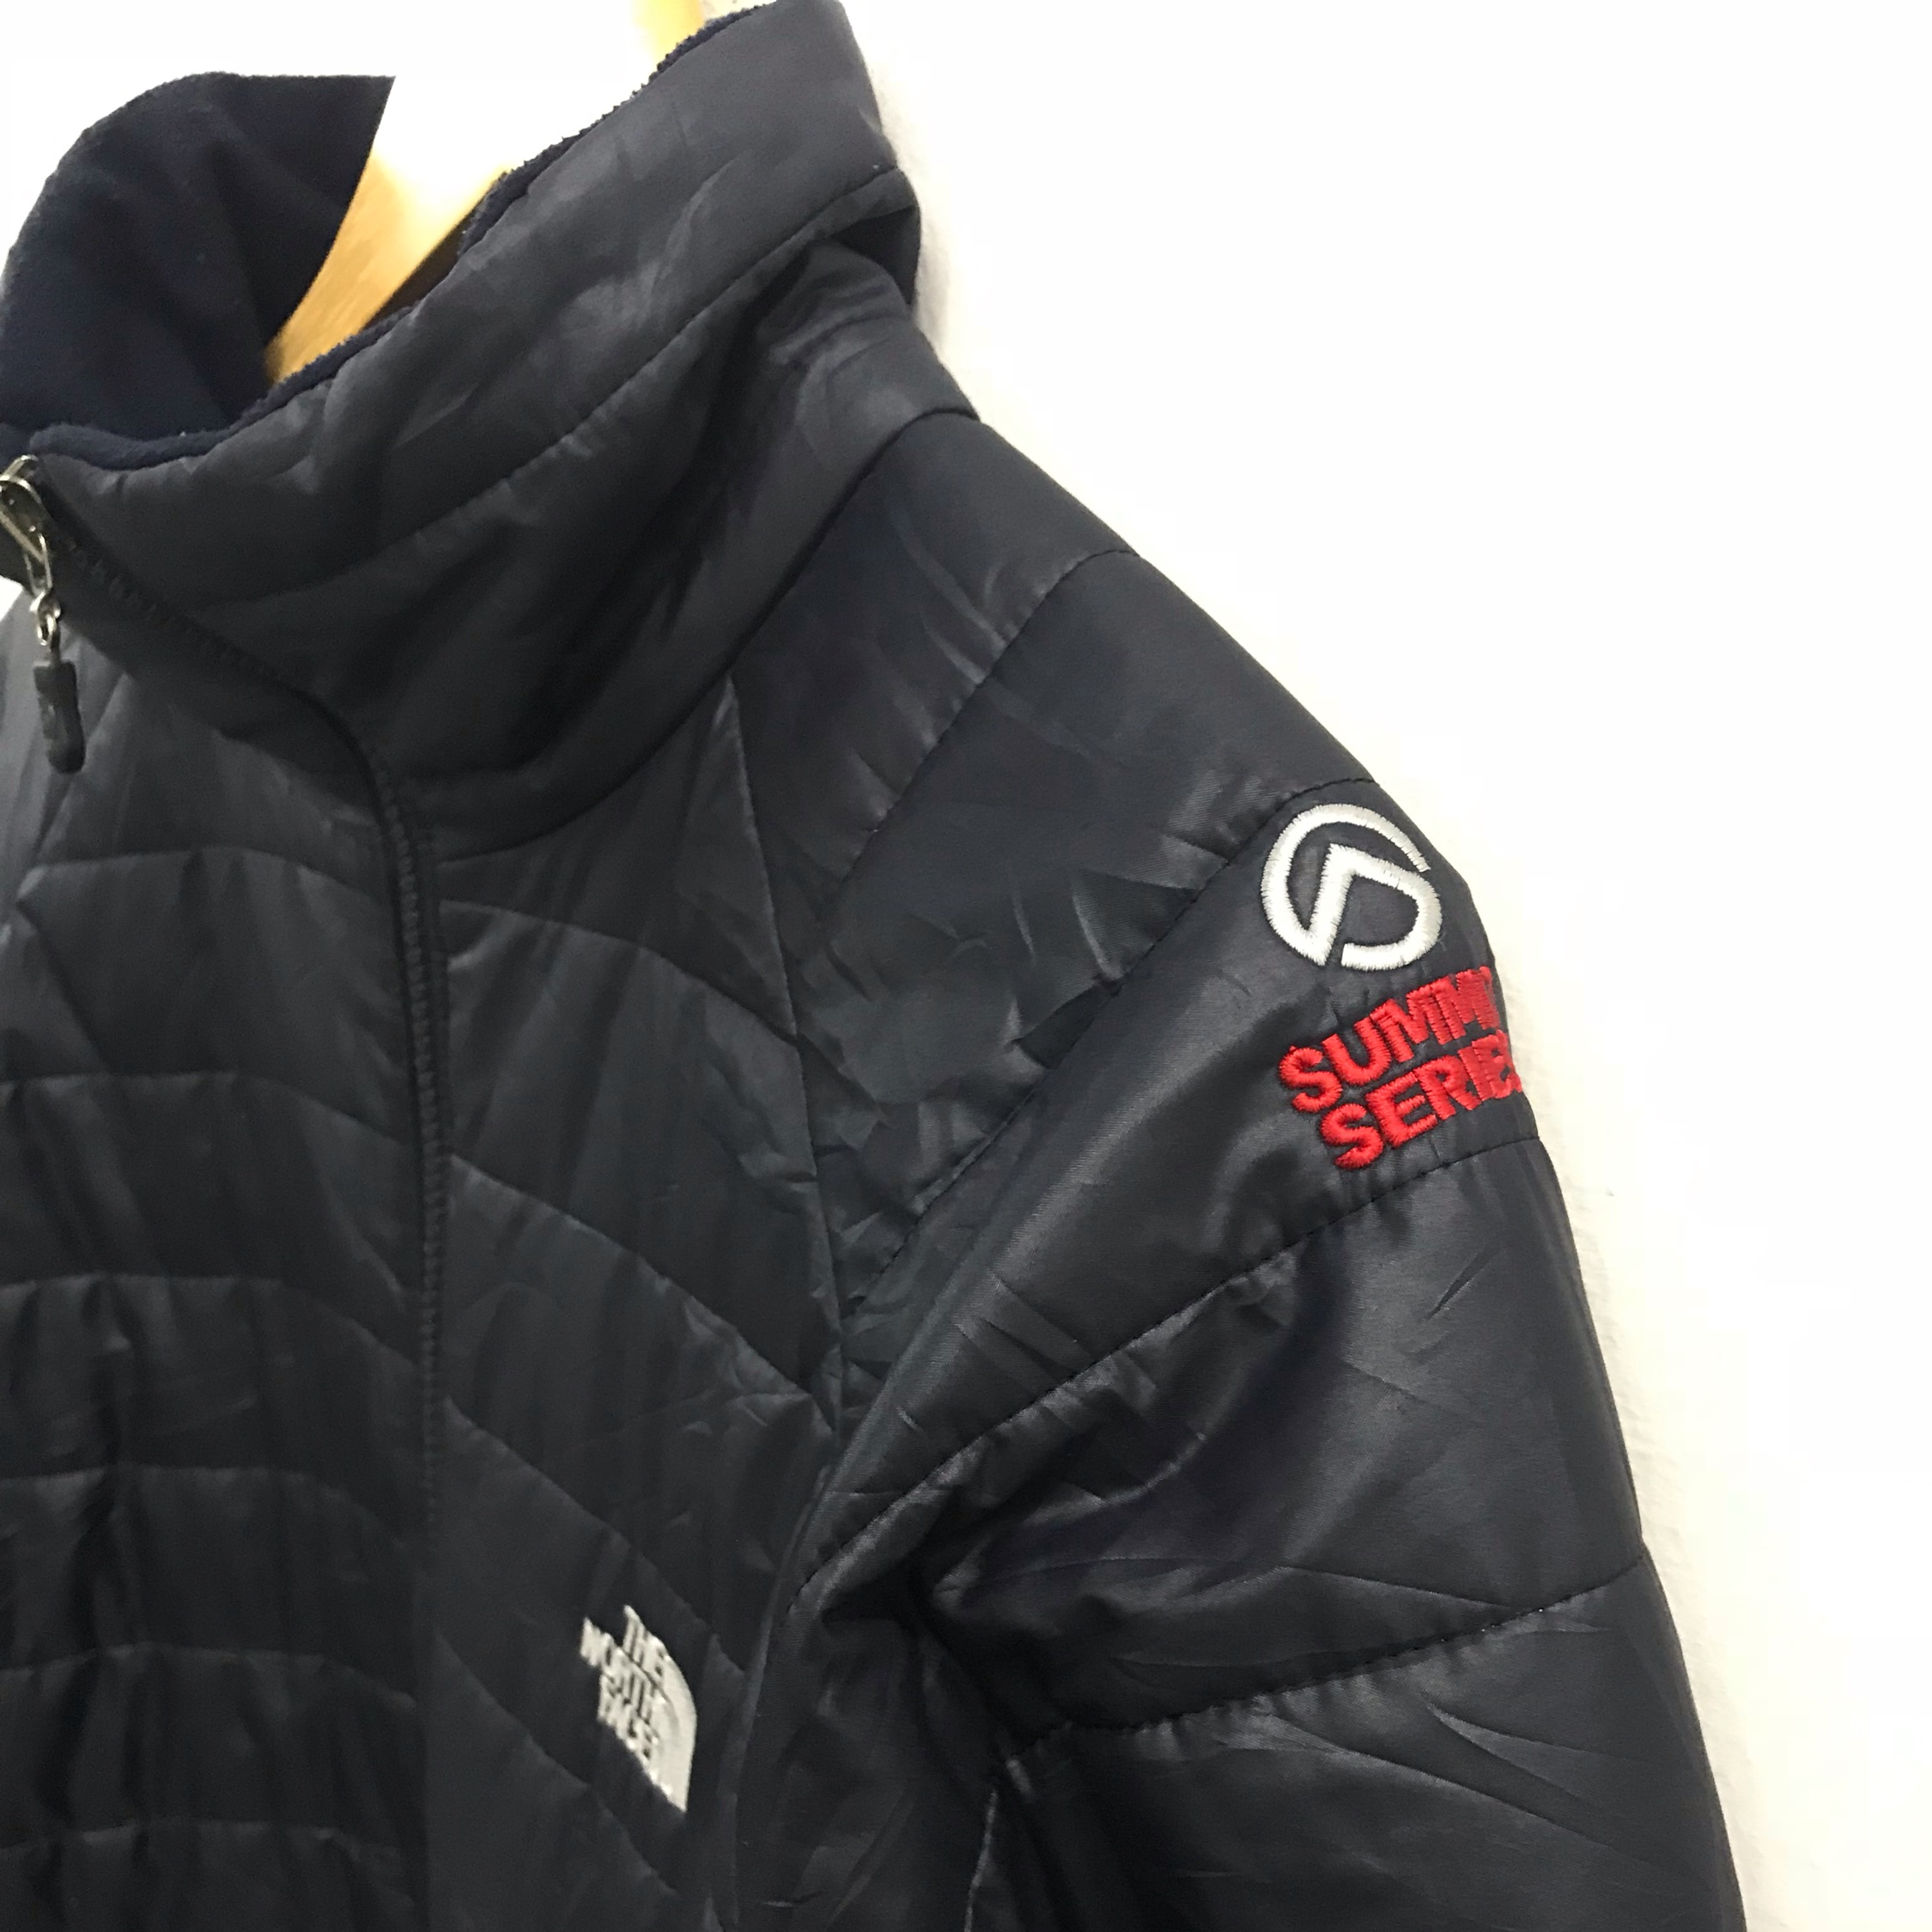 4ecec13ef The North Face 800 Summit Series Puffer Jacket